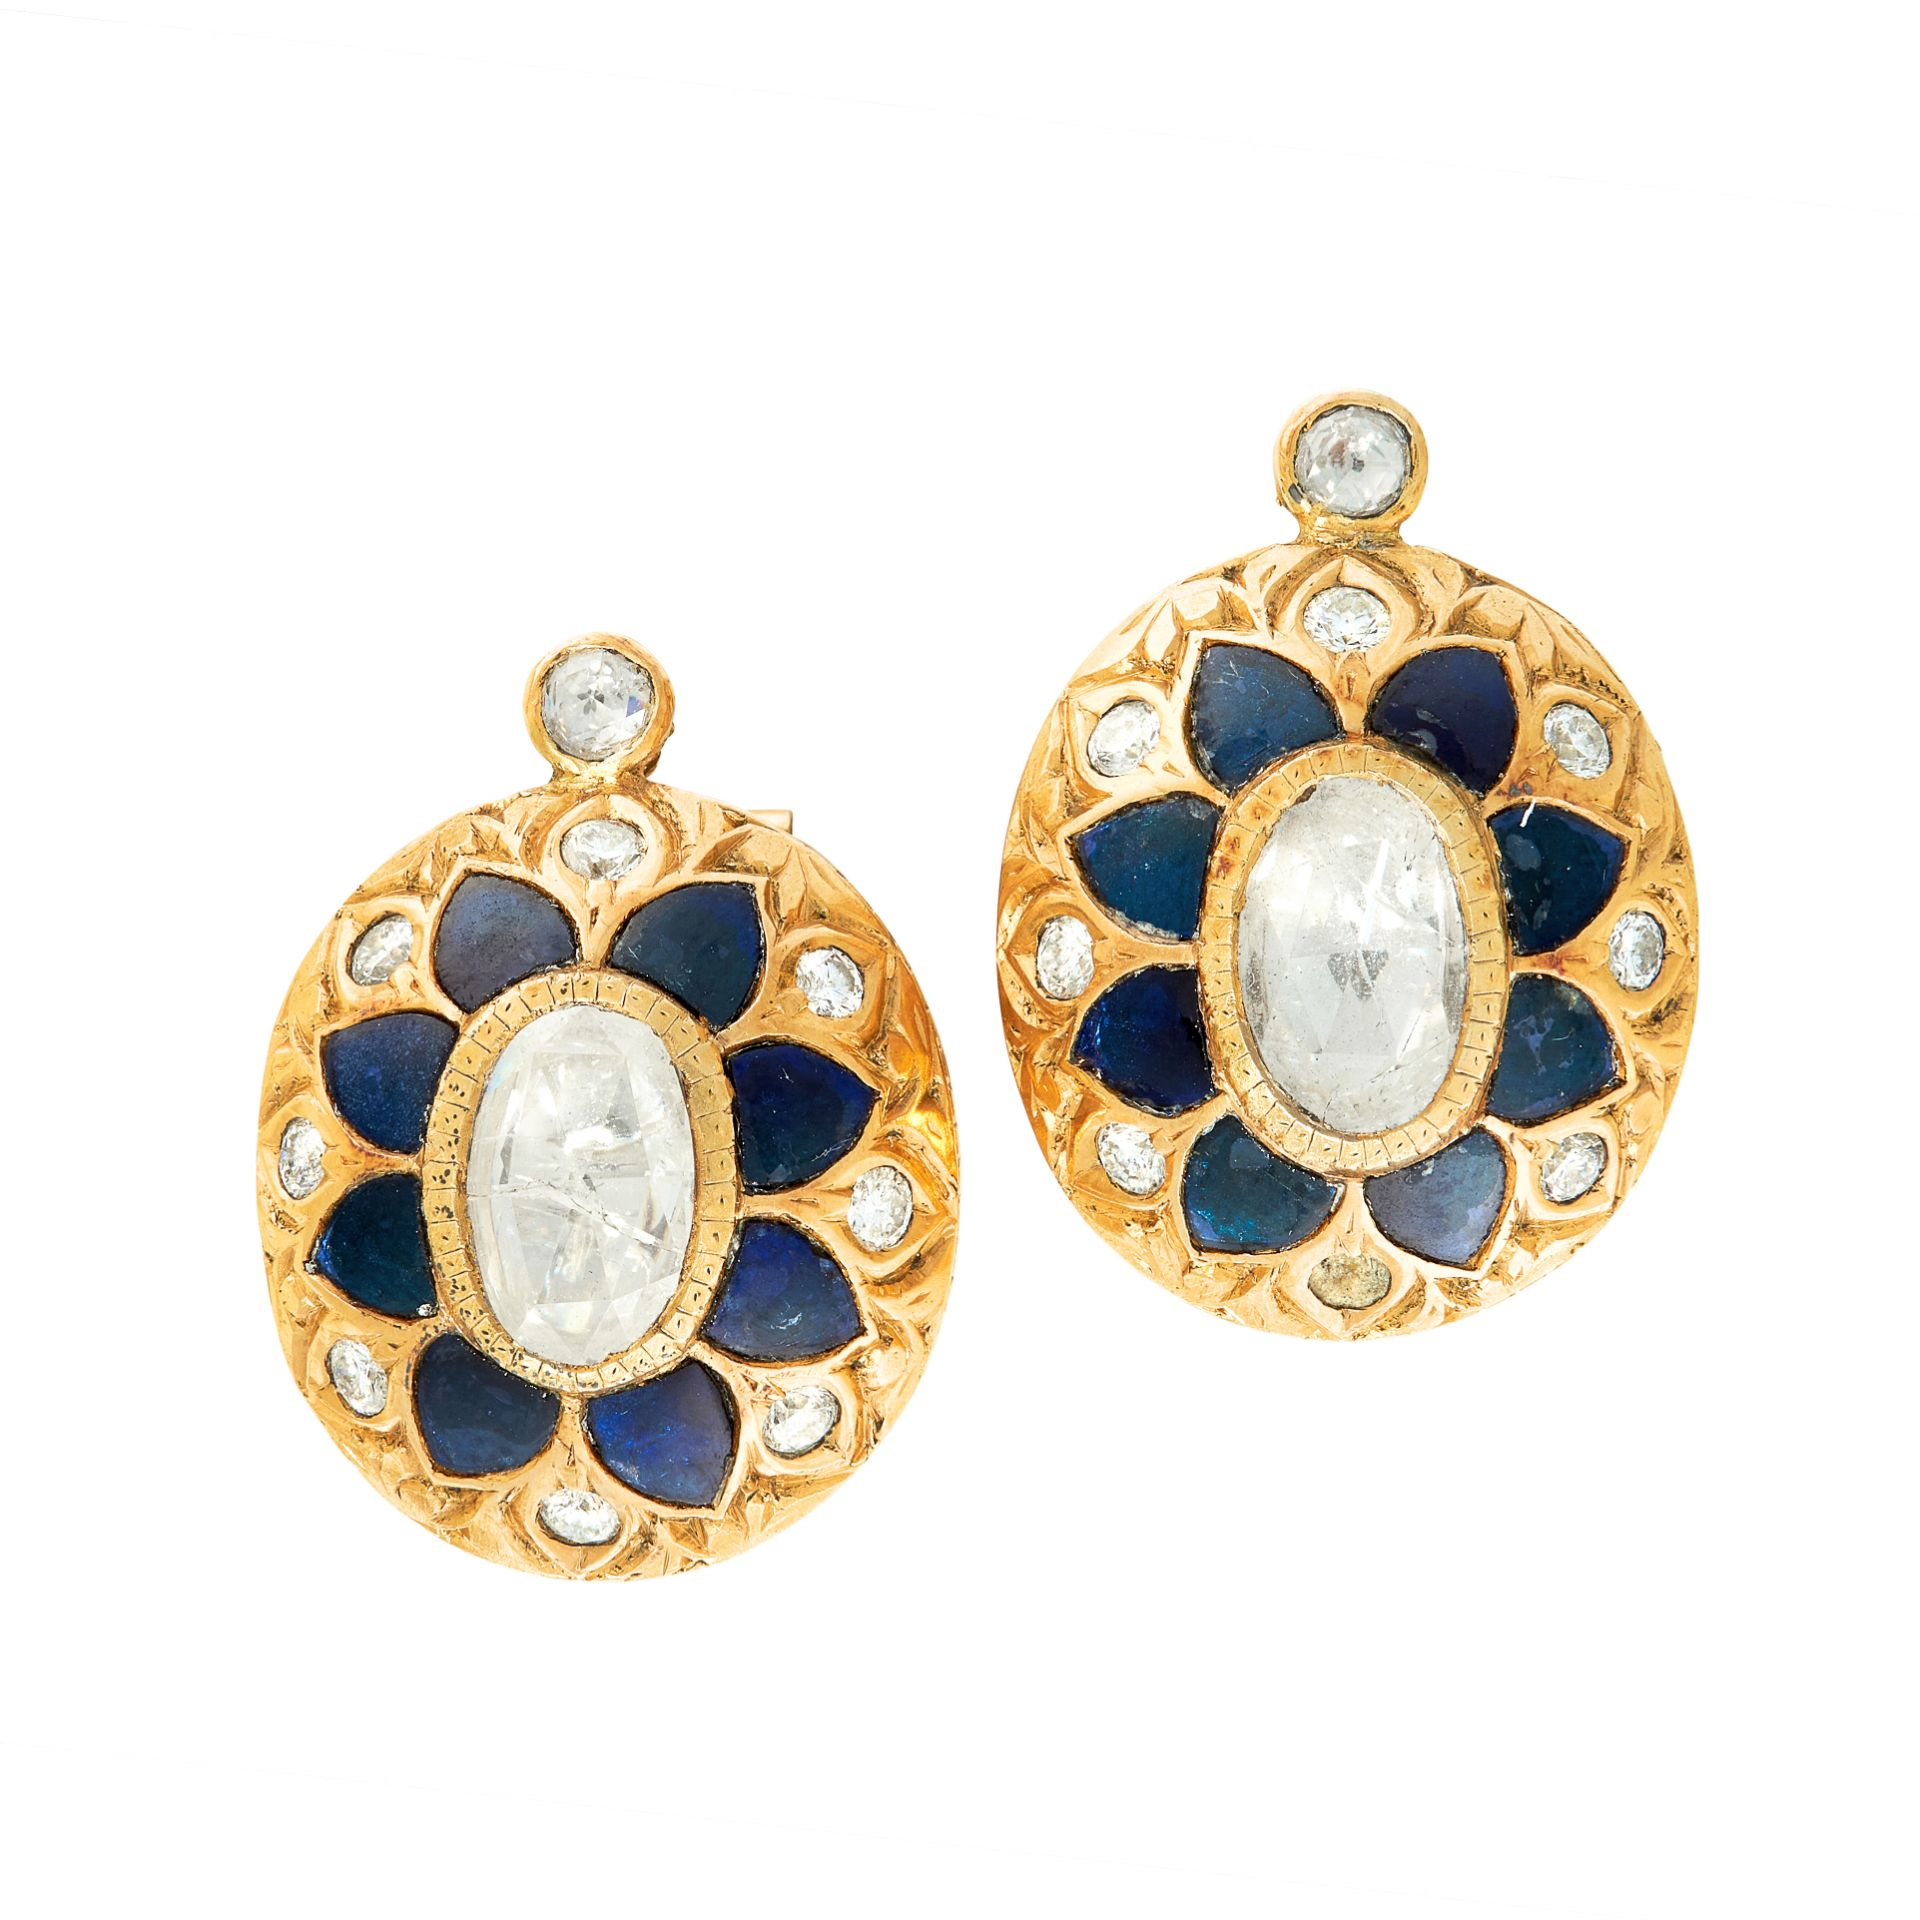 A PAIR OF DIAMOND AND ENAMEL EARRINGS each set with an elongated oval rose cut diamond of 9.5mm